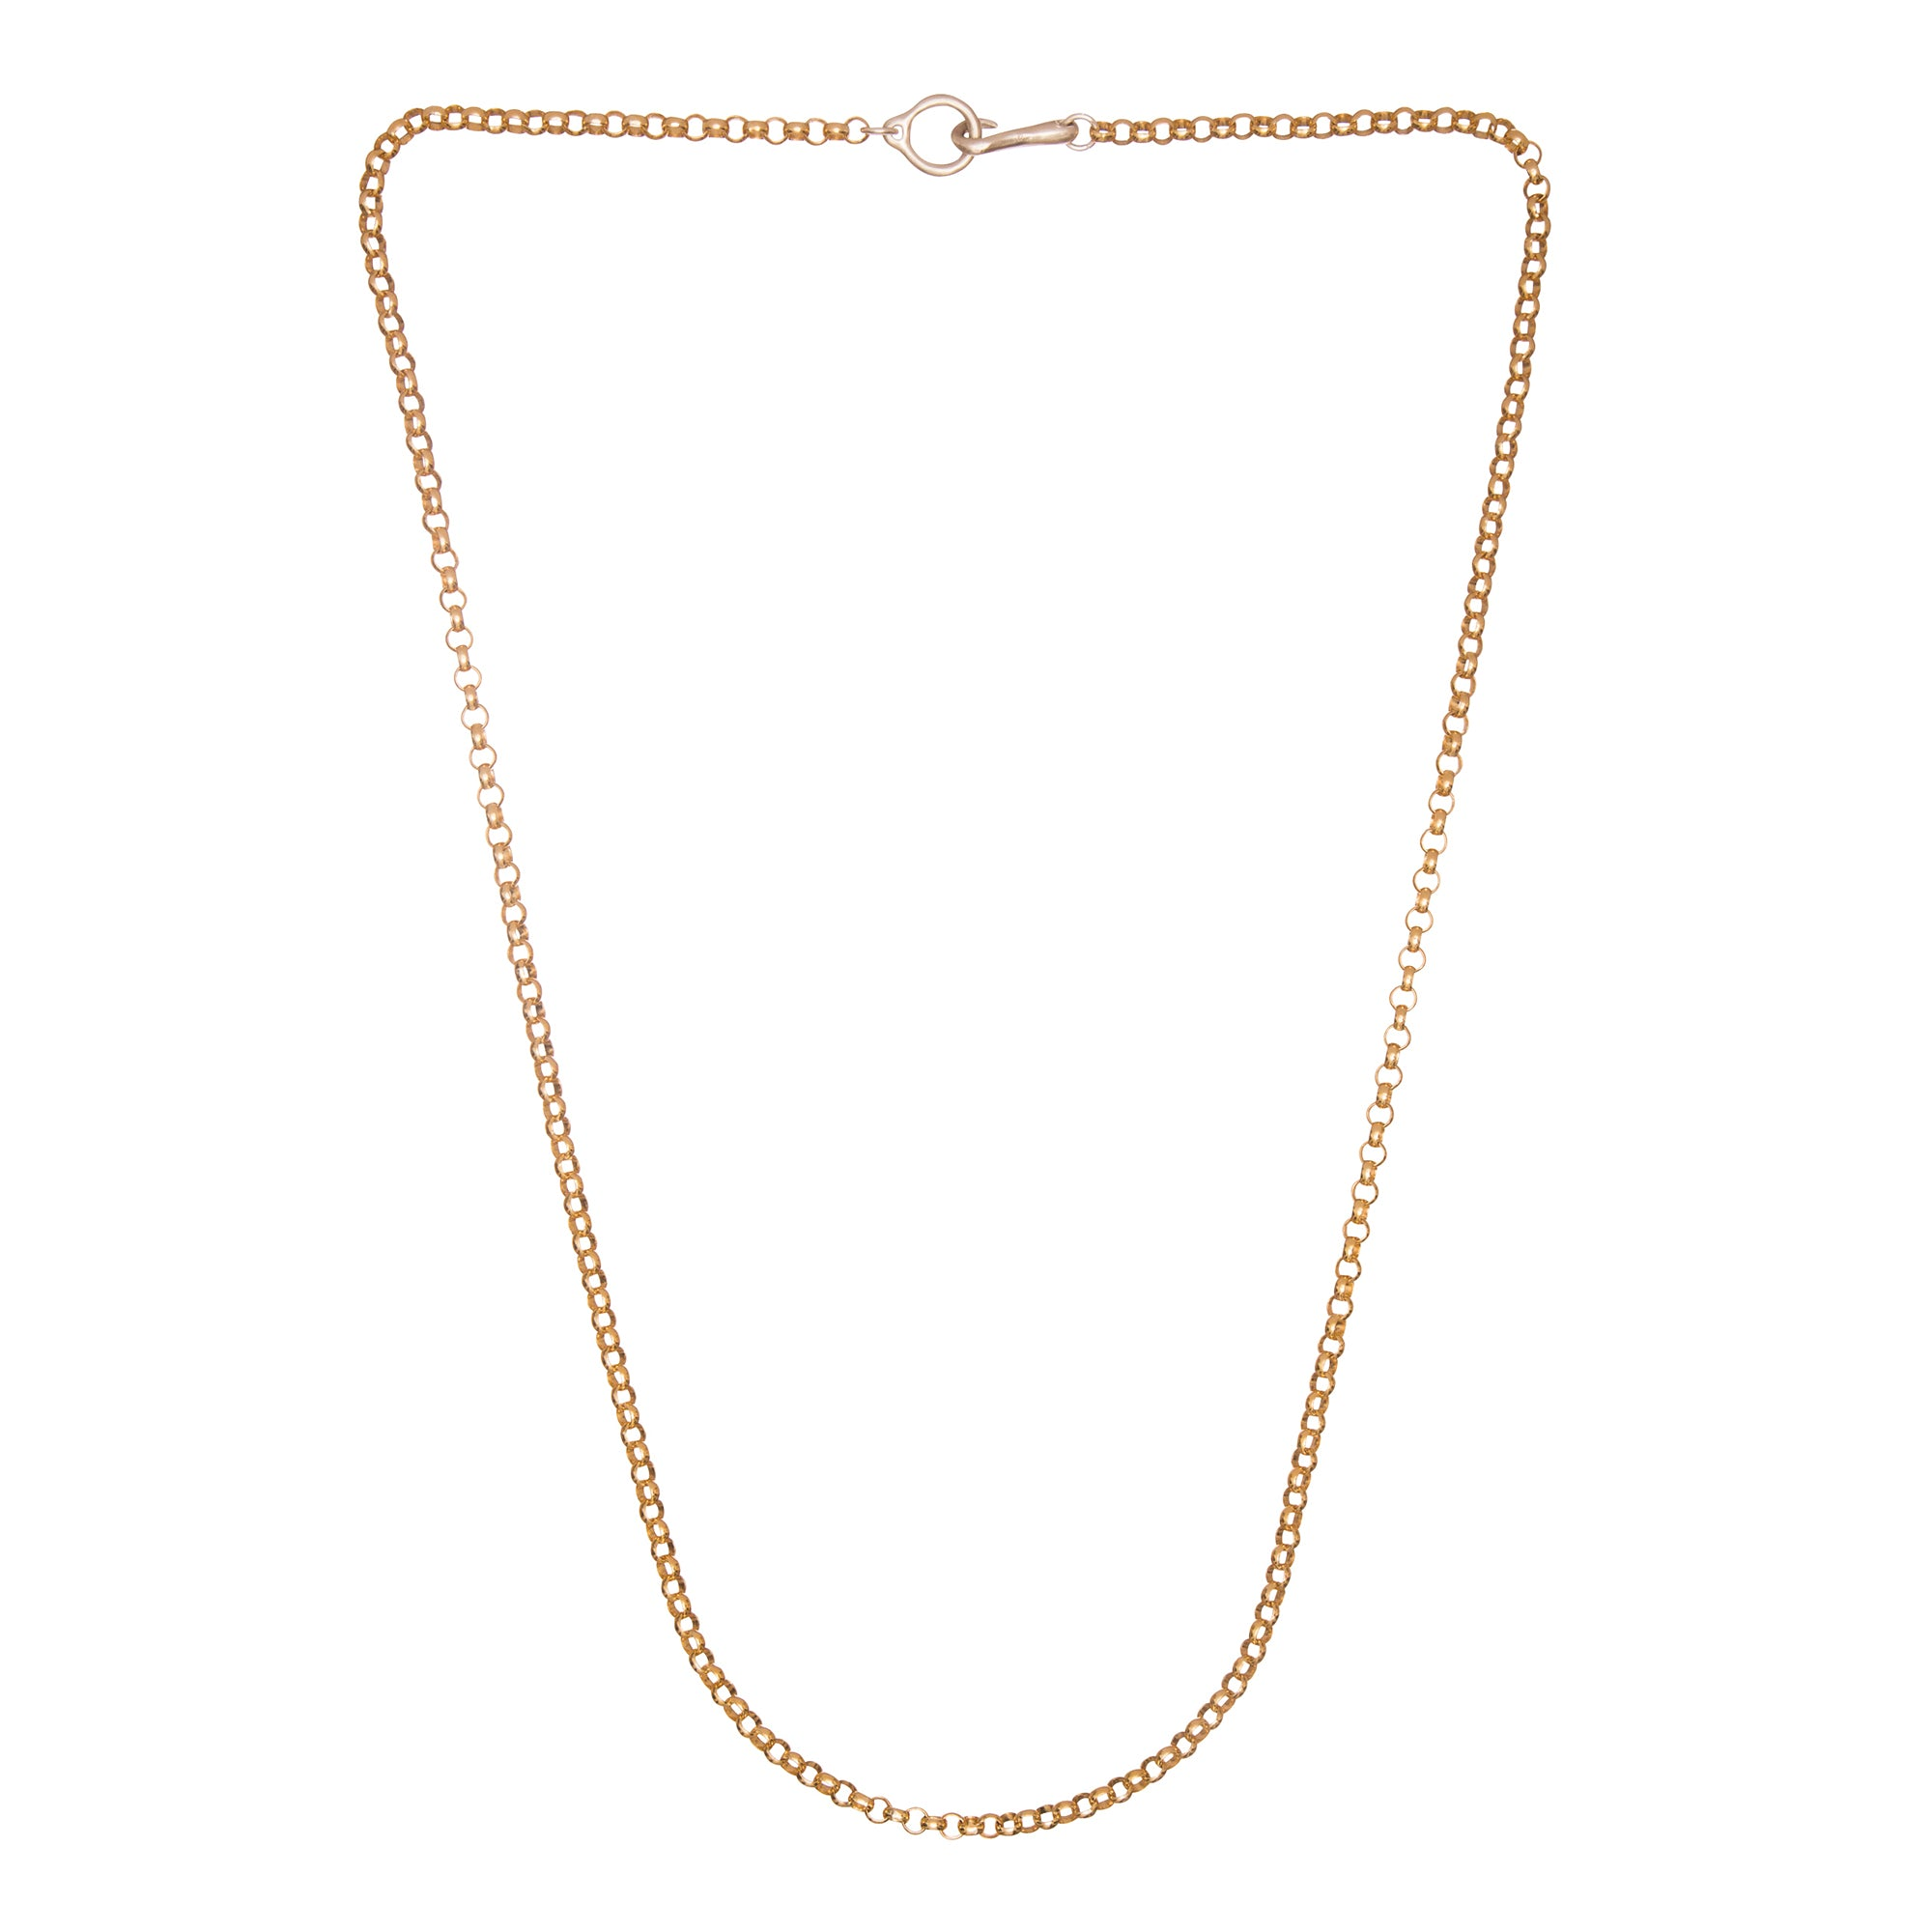 Gold Rolo Hook & Eye Chain by James Colarusso for Broken English Jewelry